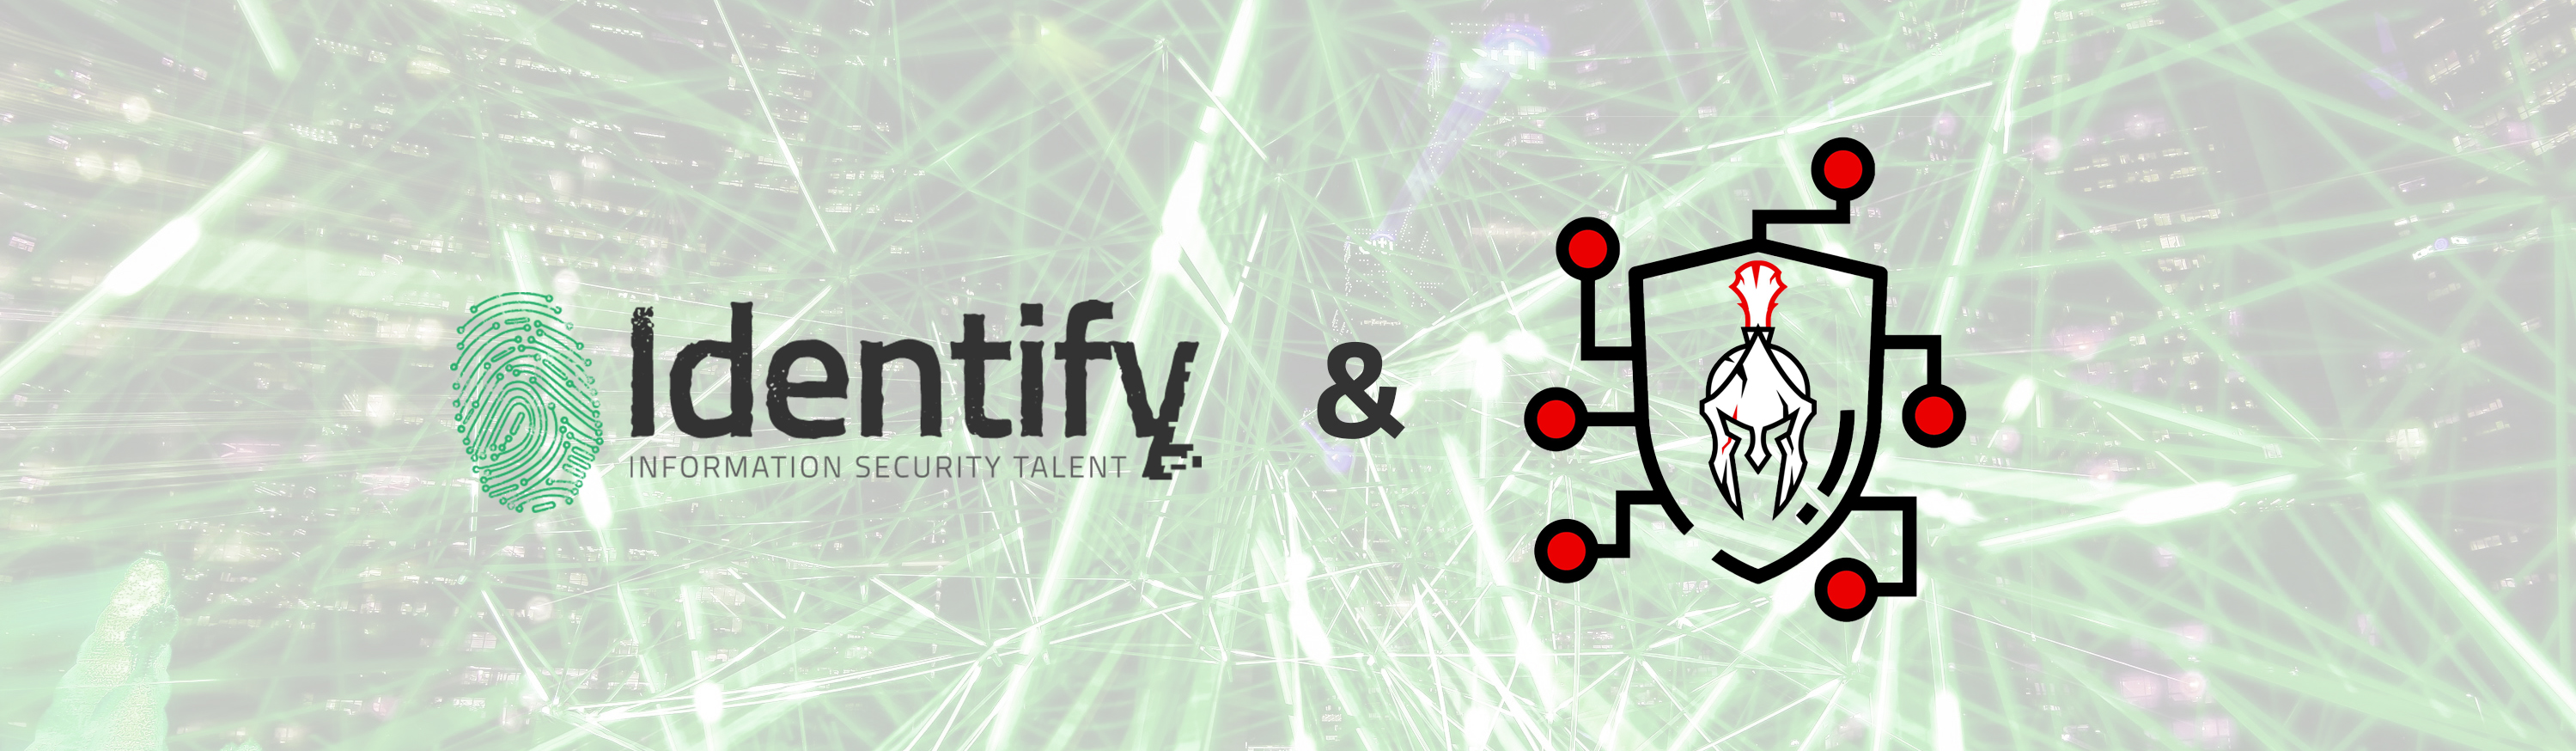 Identify Security and The Cyber Warrior Network Team Up